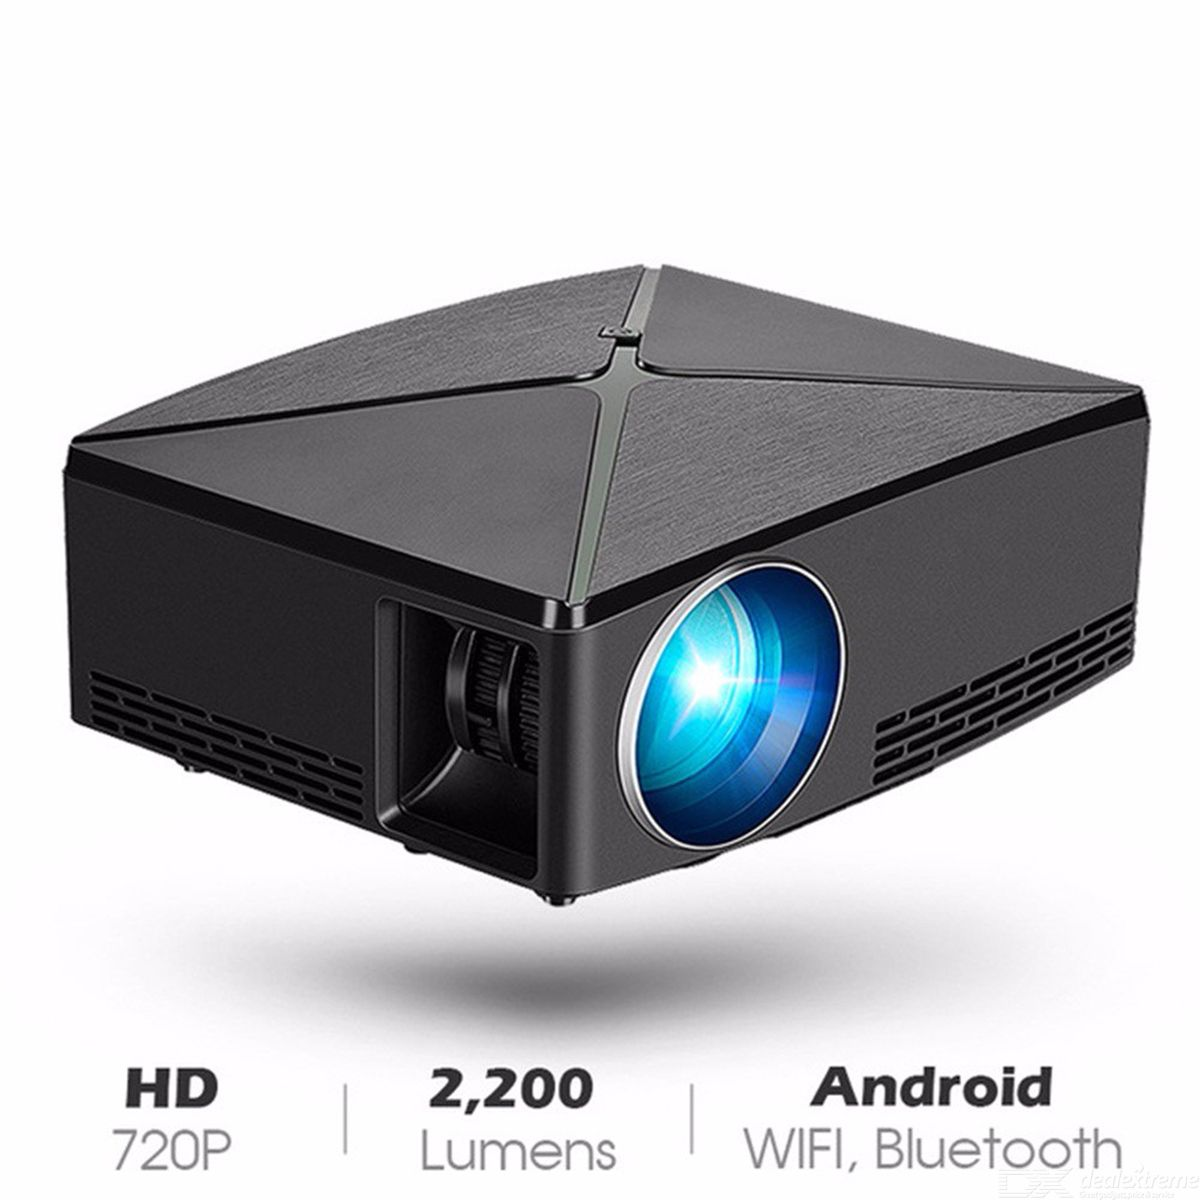 7a24c88990 C80 Mini Projector HD 720p LED Portable Projector HD Theater Home Cinema  black - Free shipping - DealExtreme